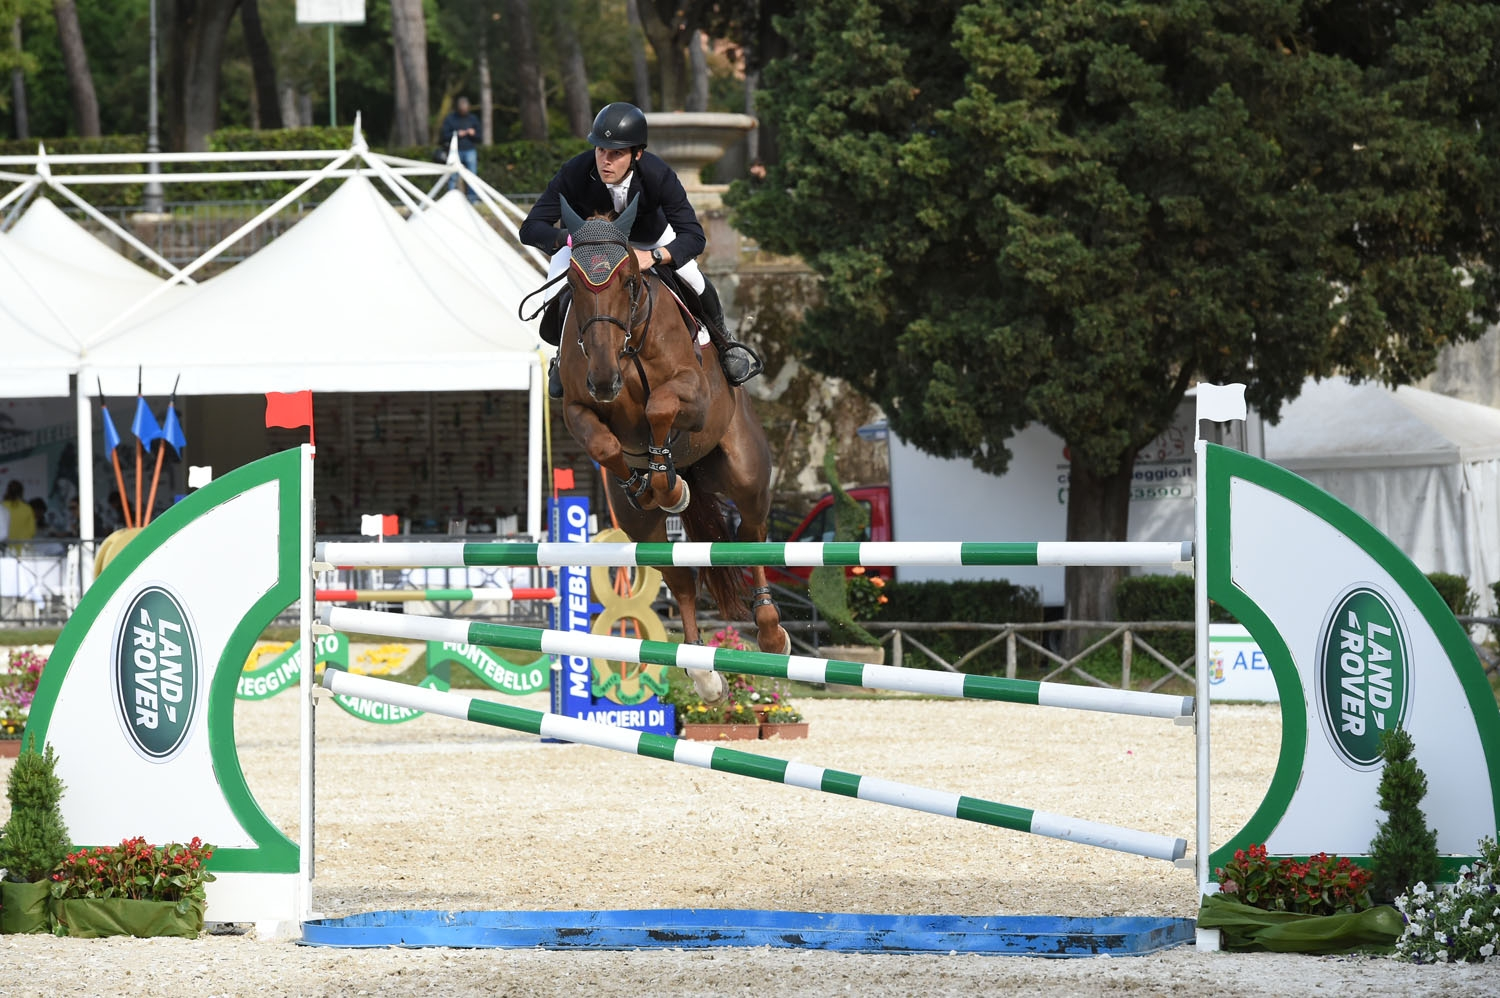 Sergio Alvarez Moya competing in Rome with G&C Quitador de Rochelais